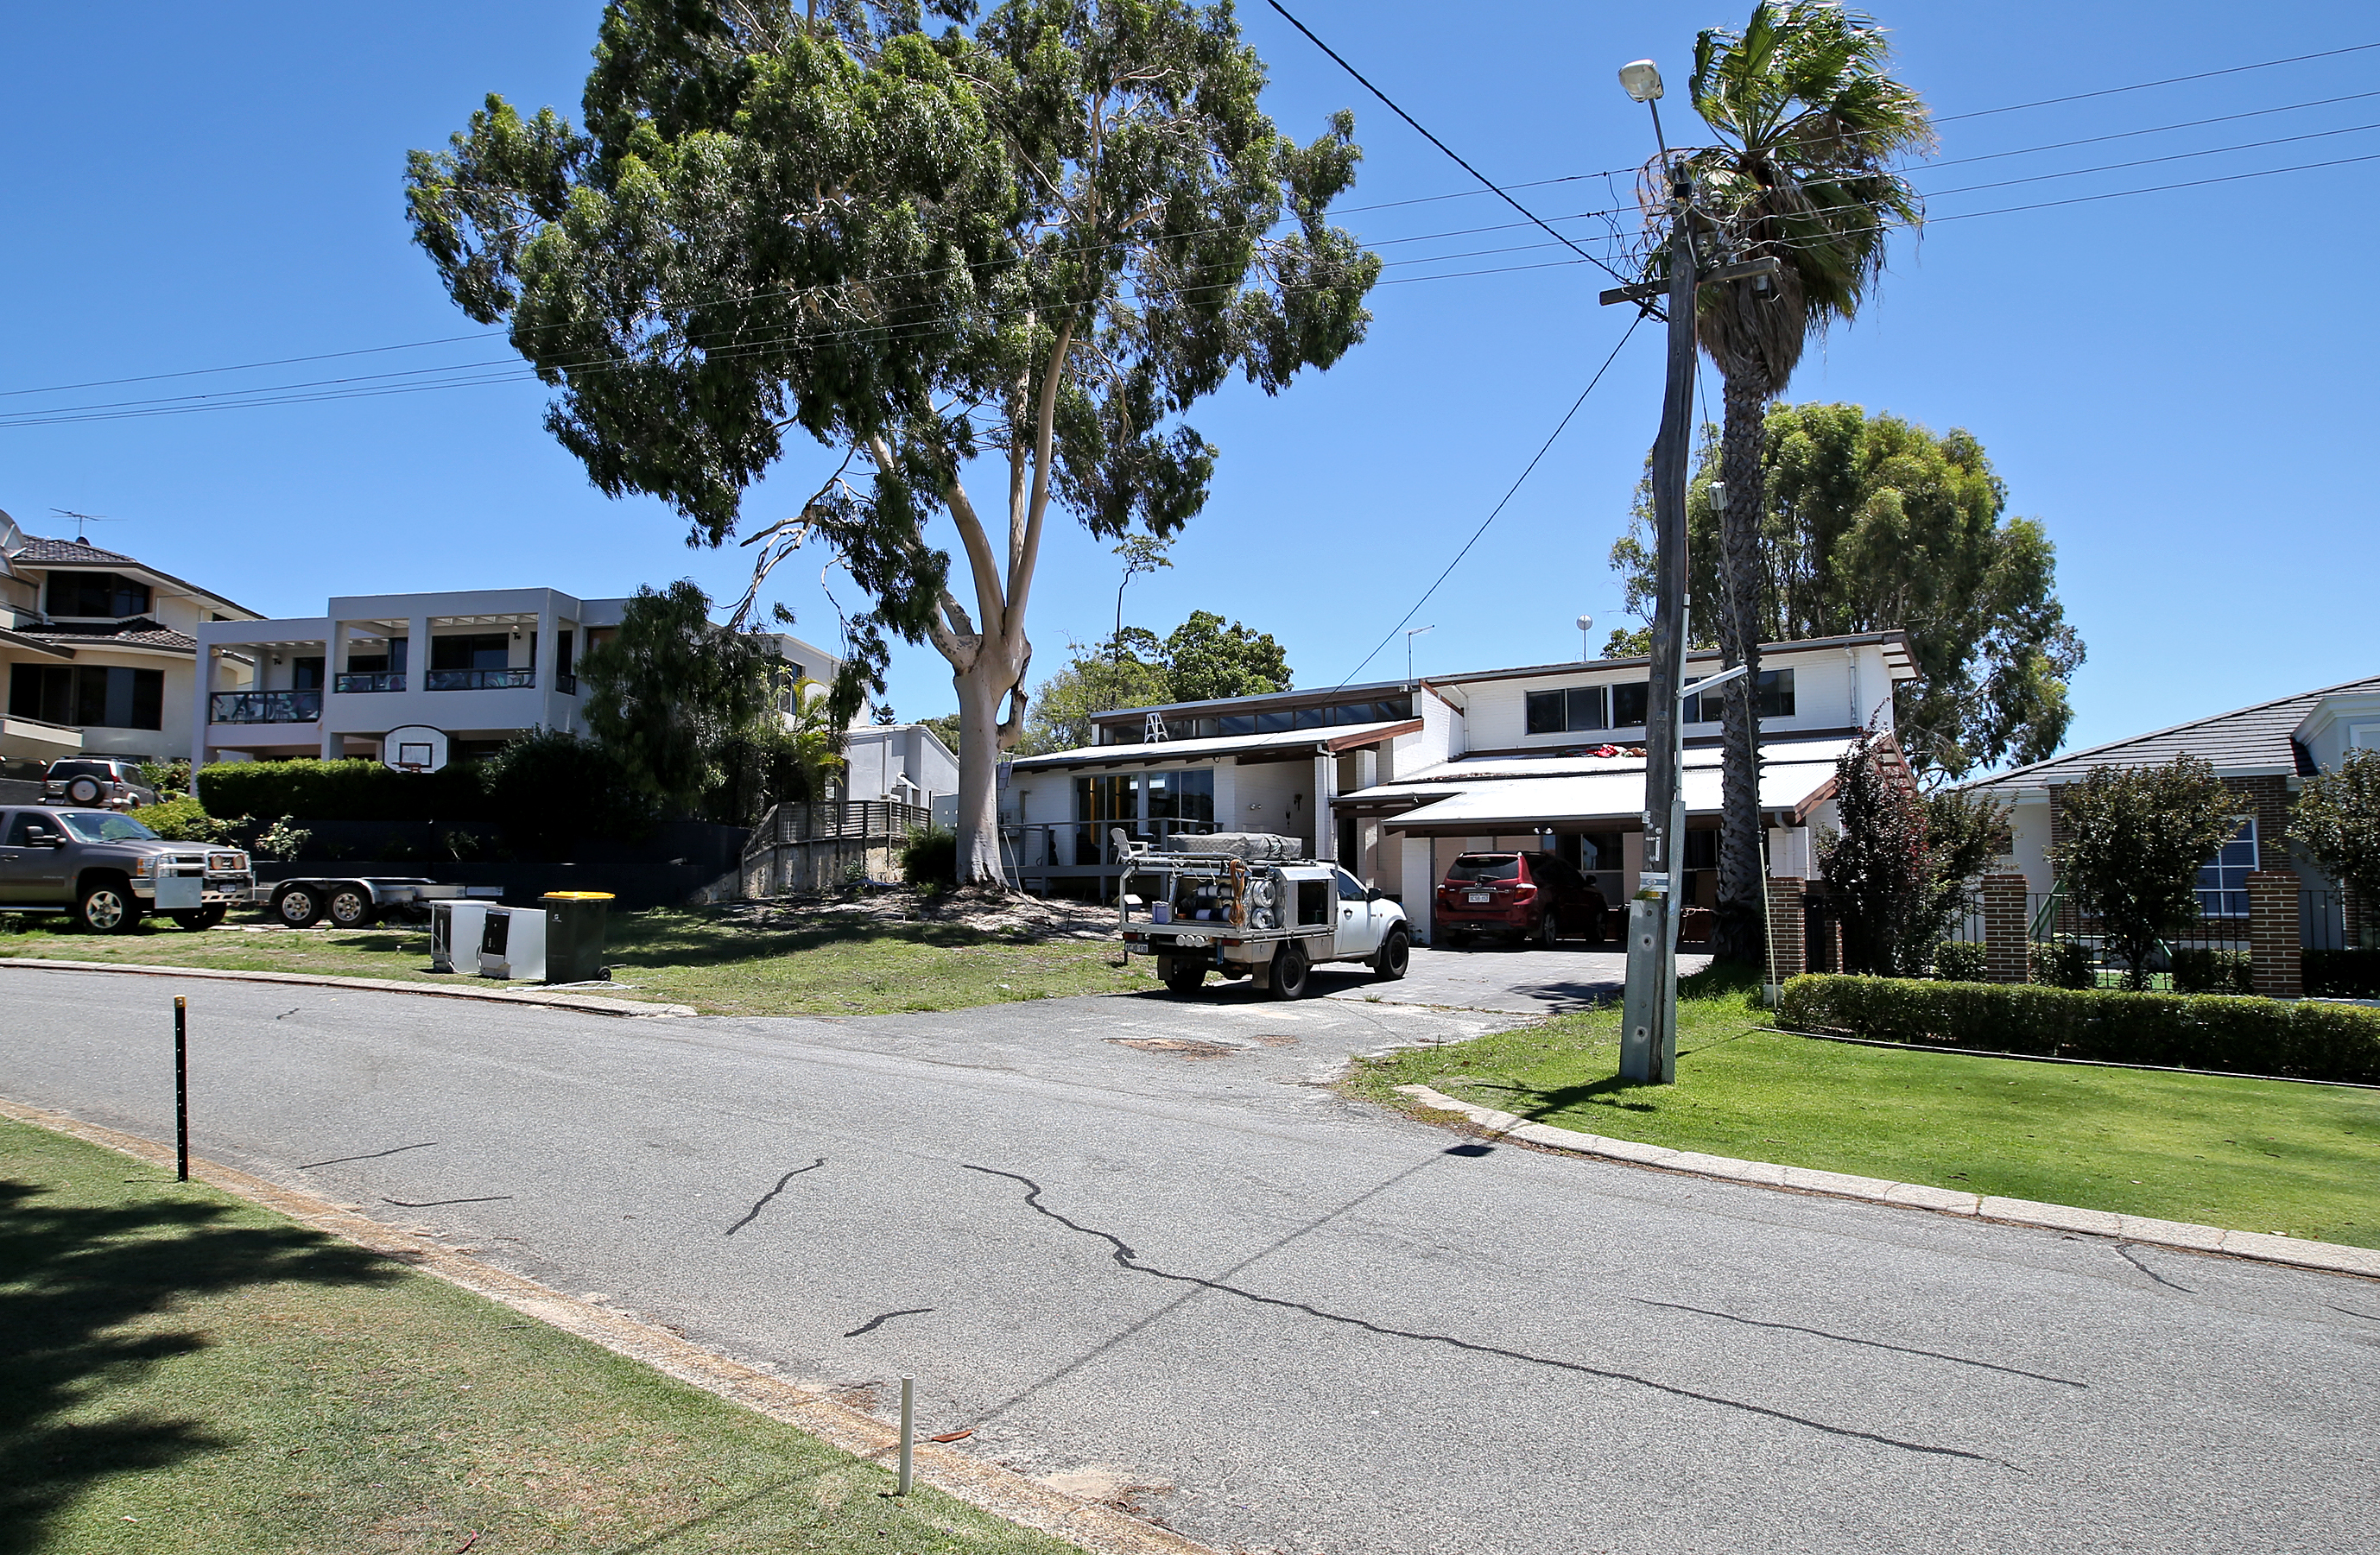 The clinic is proposed to operate from this home on Elabana Crescent in Dianella. Photo: David Baylis